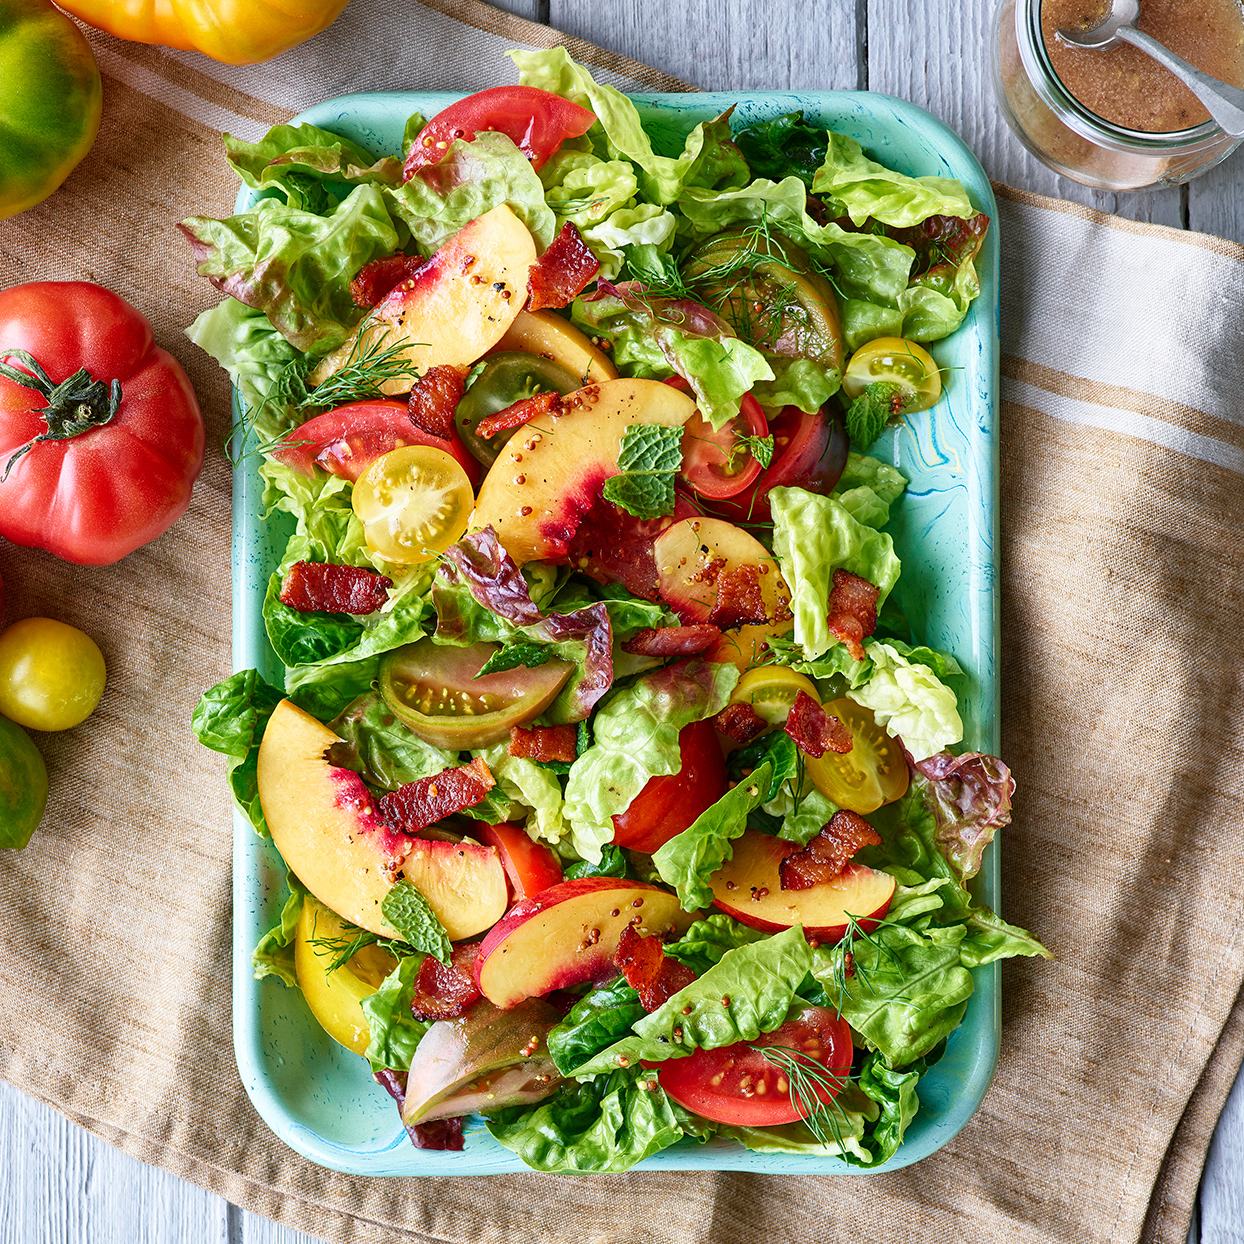 https://www.eatingwell.com/article/7833083/new-study-finds-diets-high-in-plant-proteins-are-linked-to-lower-death-rates/peach-salad-with-tomatoes-raspberry-vinaigrette/